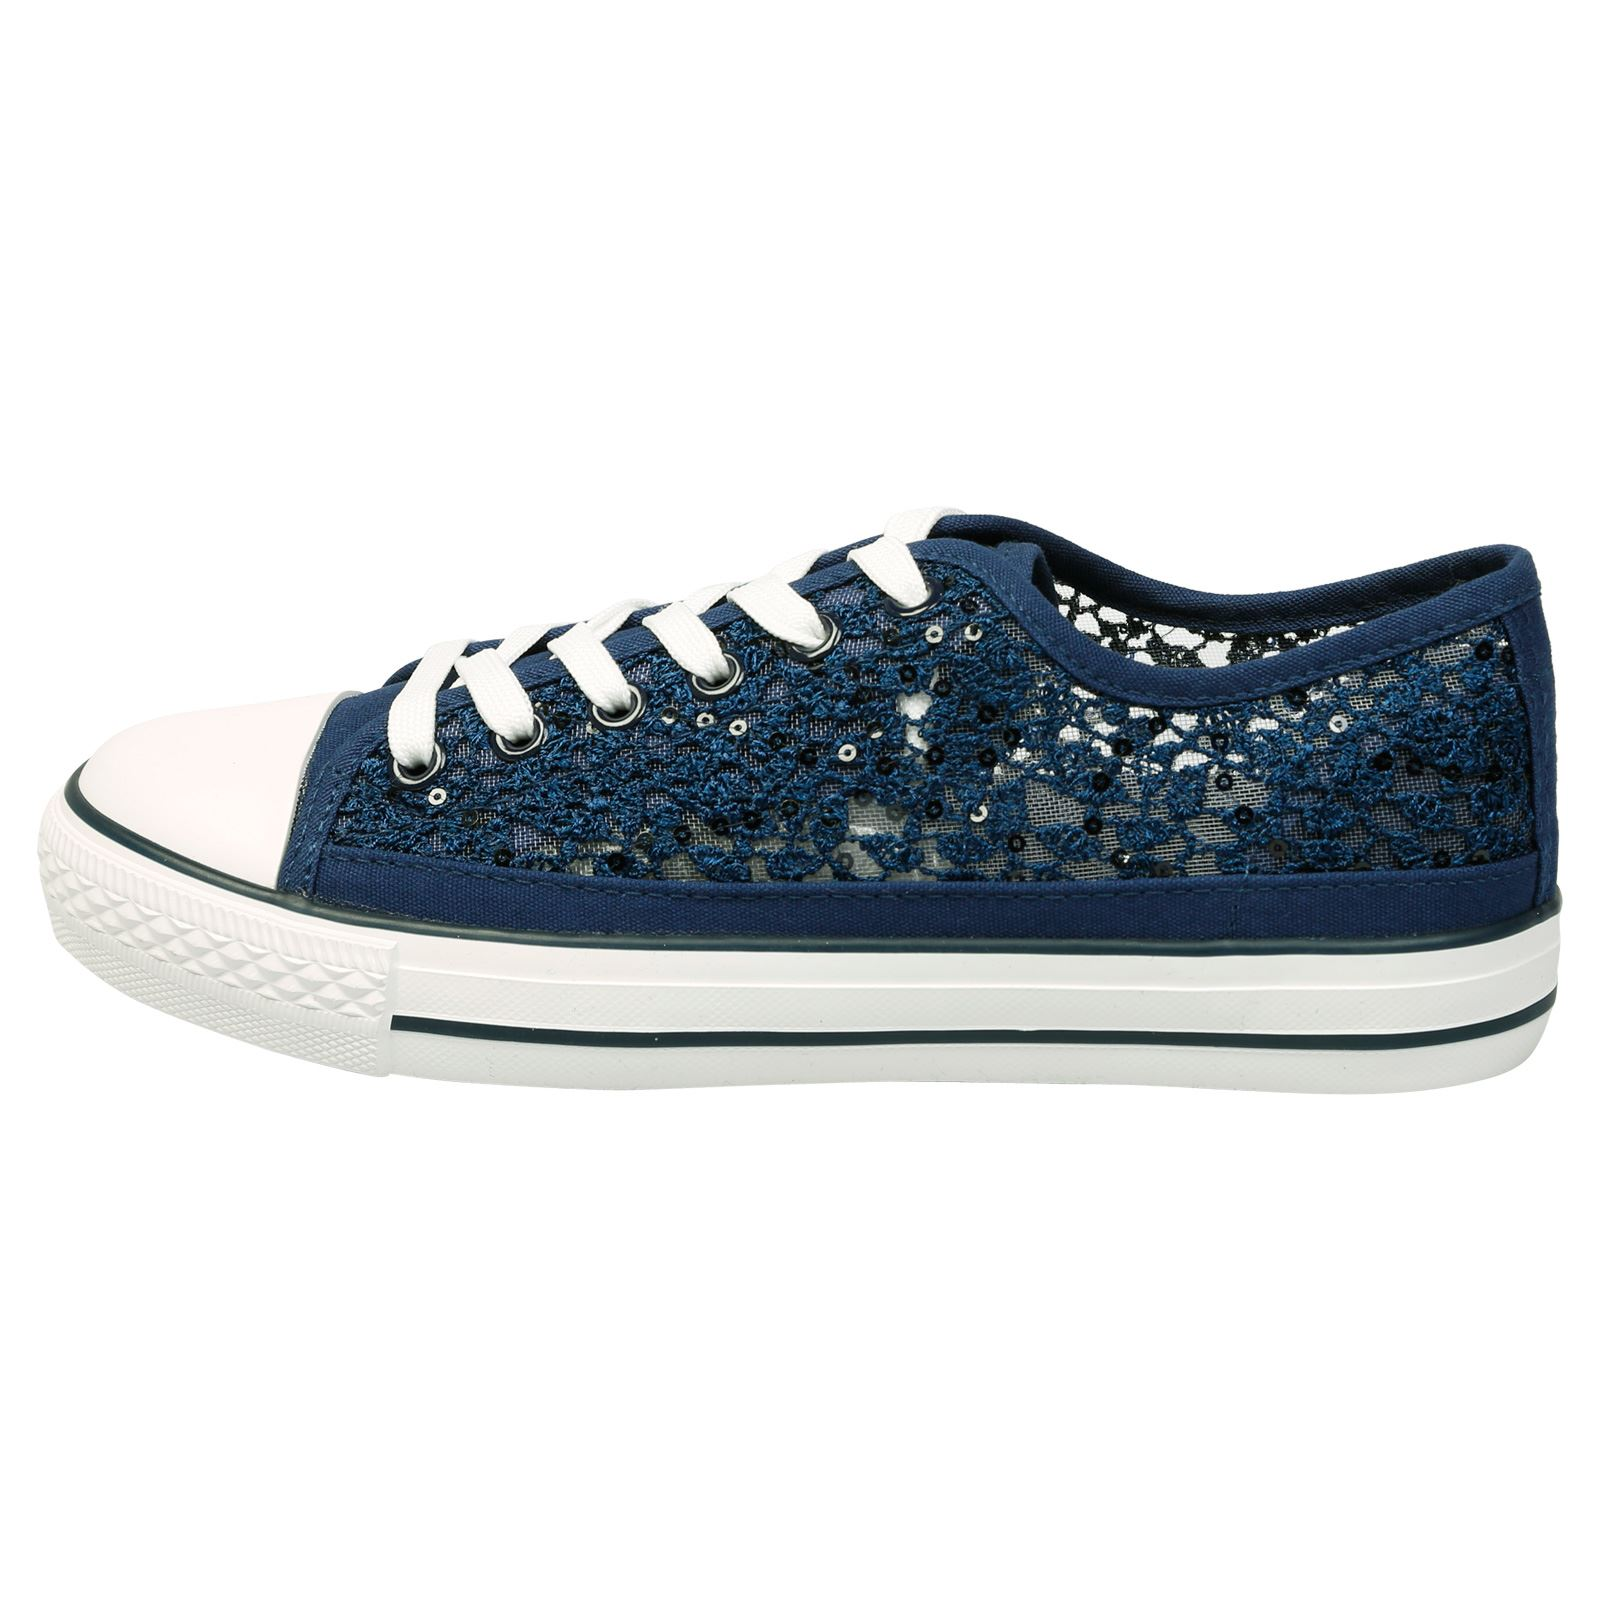 WOMENS-SHOES-LADIES-PUMPS-SNEAKERS-TRAINERS-LACE-UP-